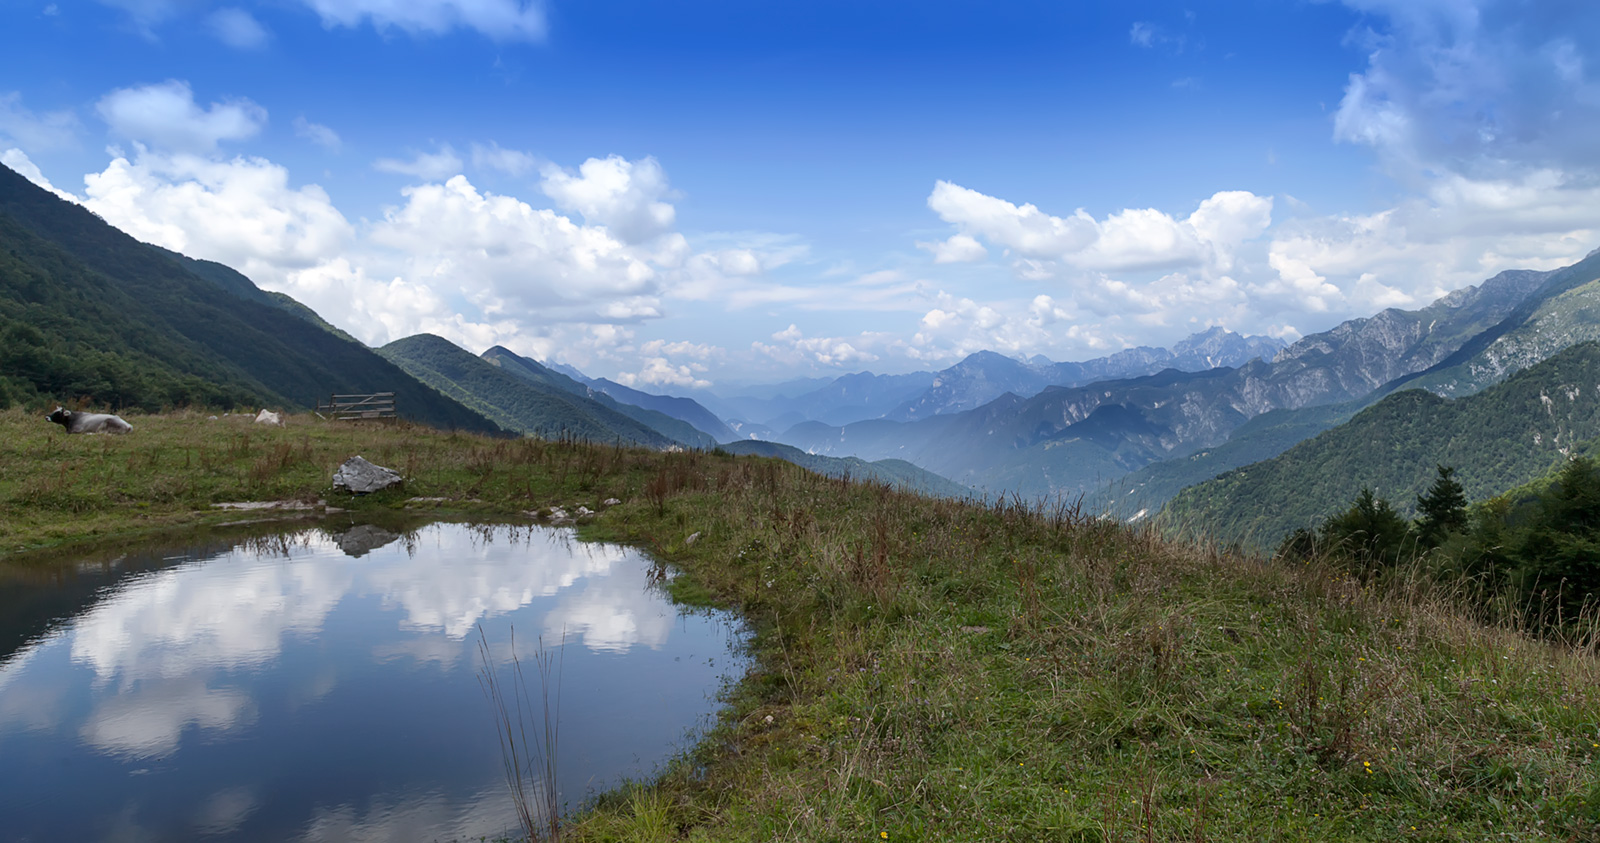 From the pastures of mountain dairy Kot (Coot in italian) you can see the whole valley of Rezija as clear as day